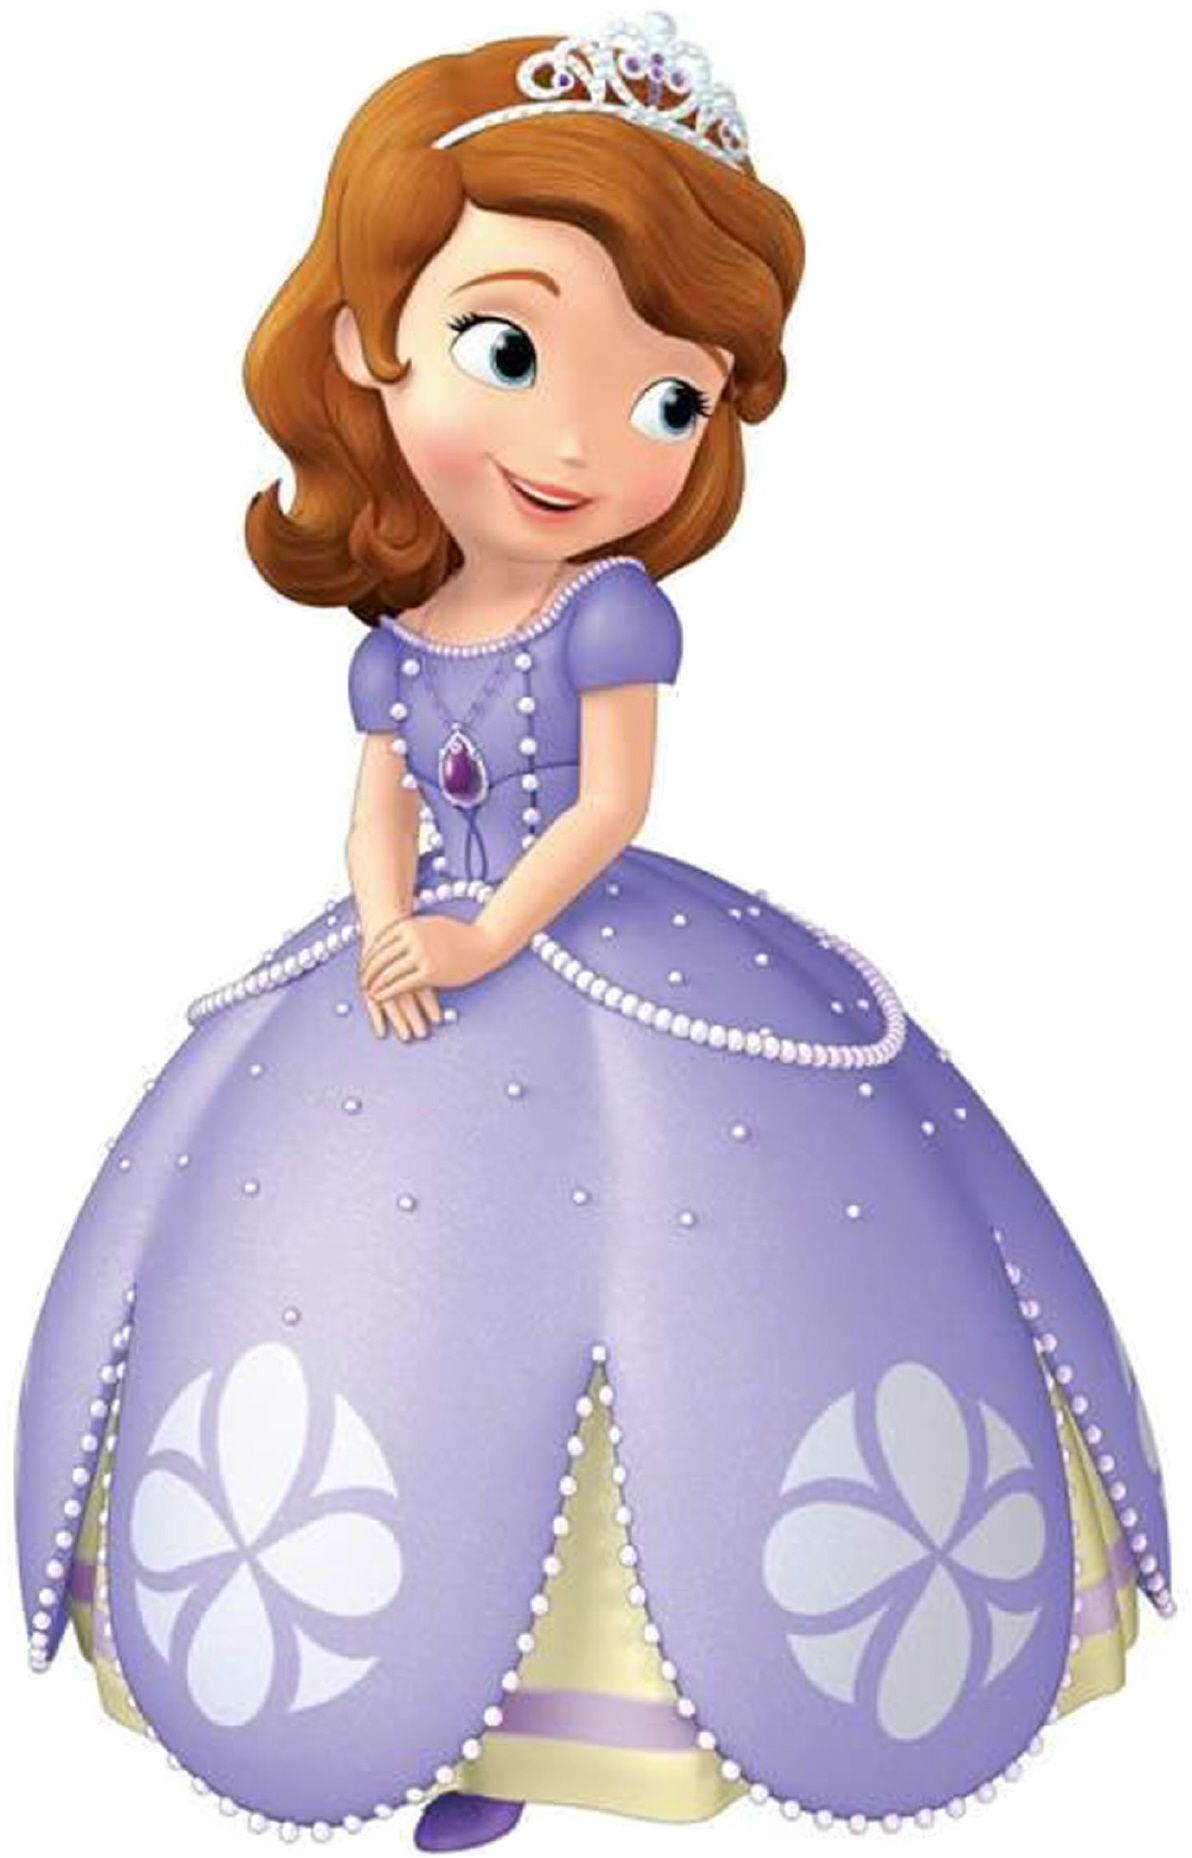 Sofia The First Inspired Cropped Image Ide Pesta Ulang Tahun Putri